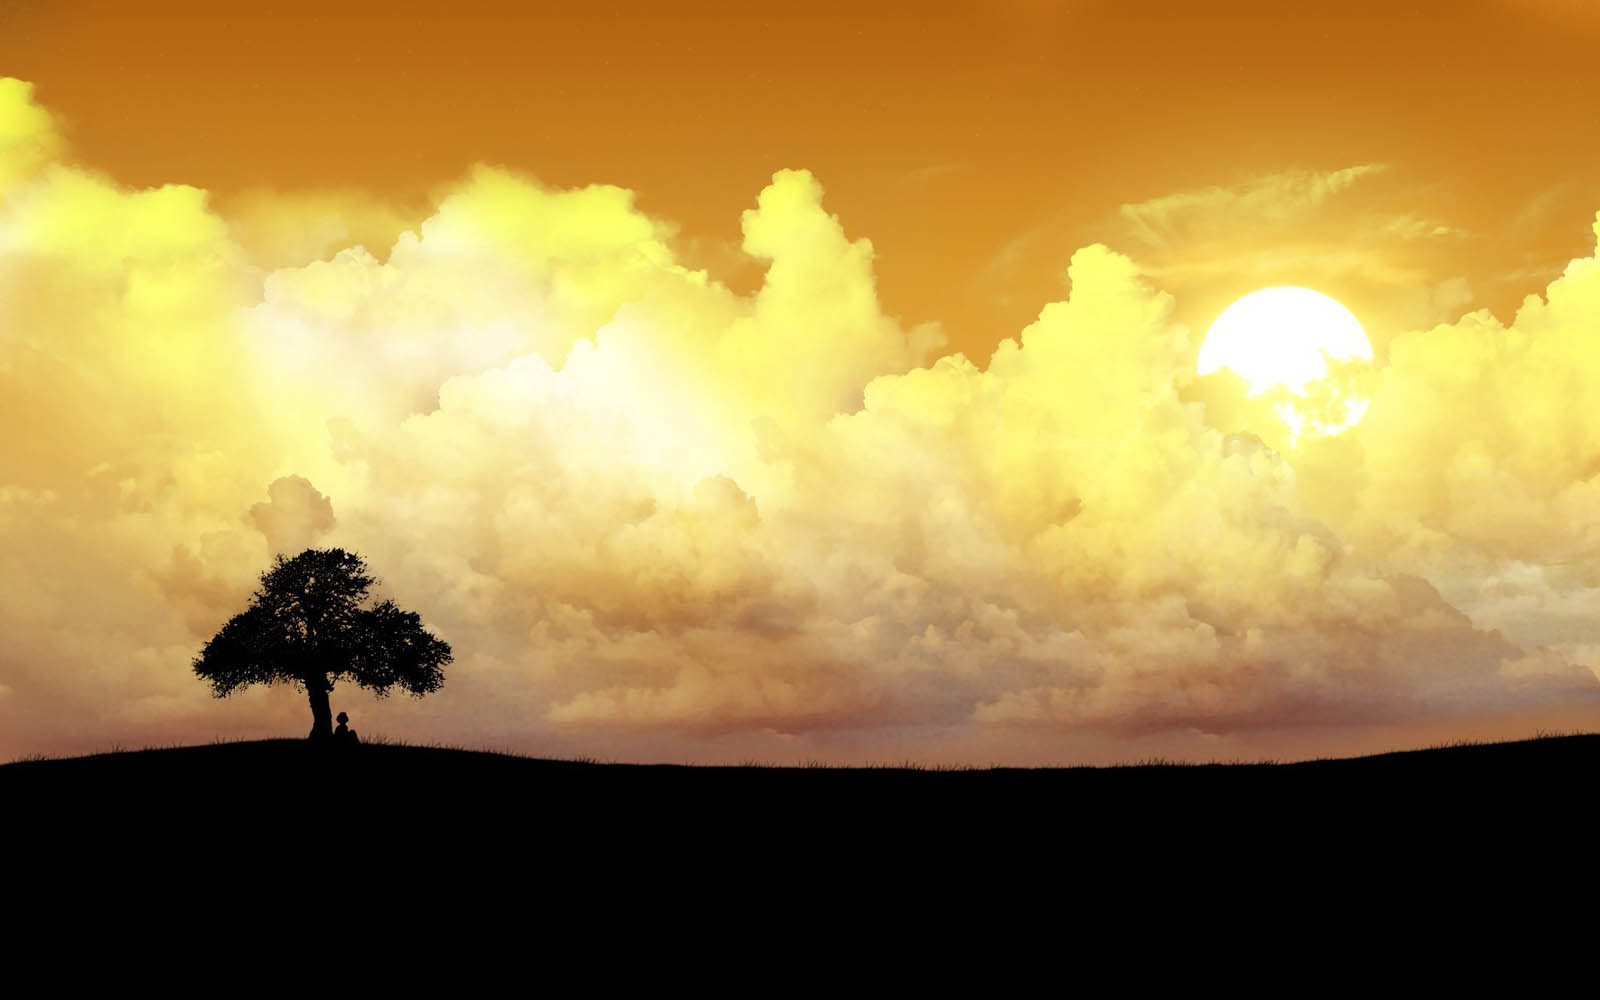 wallpapers: Lonely Tree Photography Wallpapers